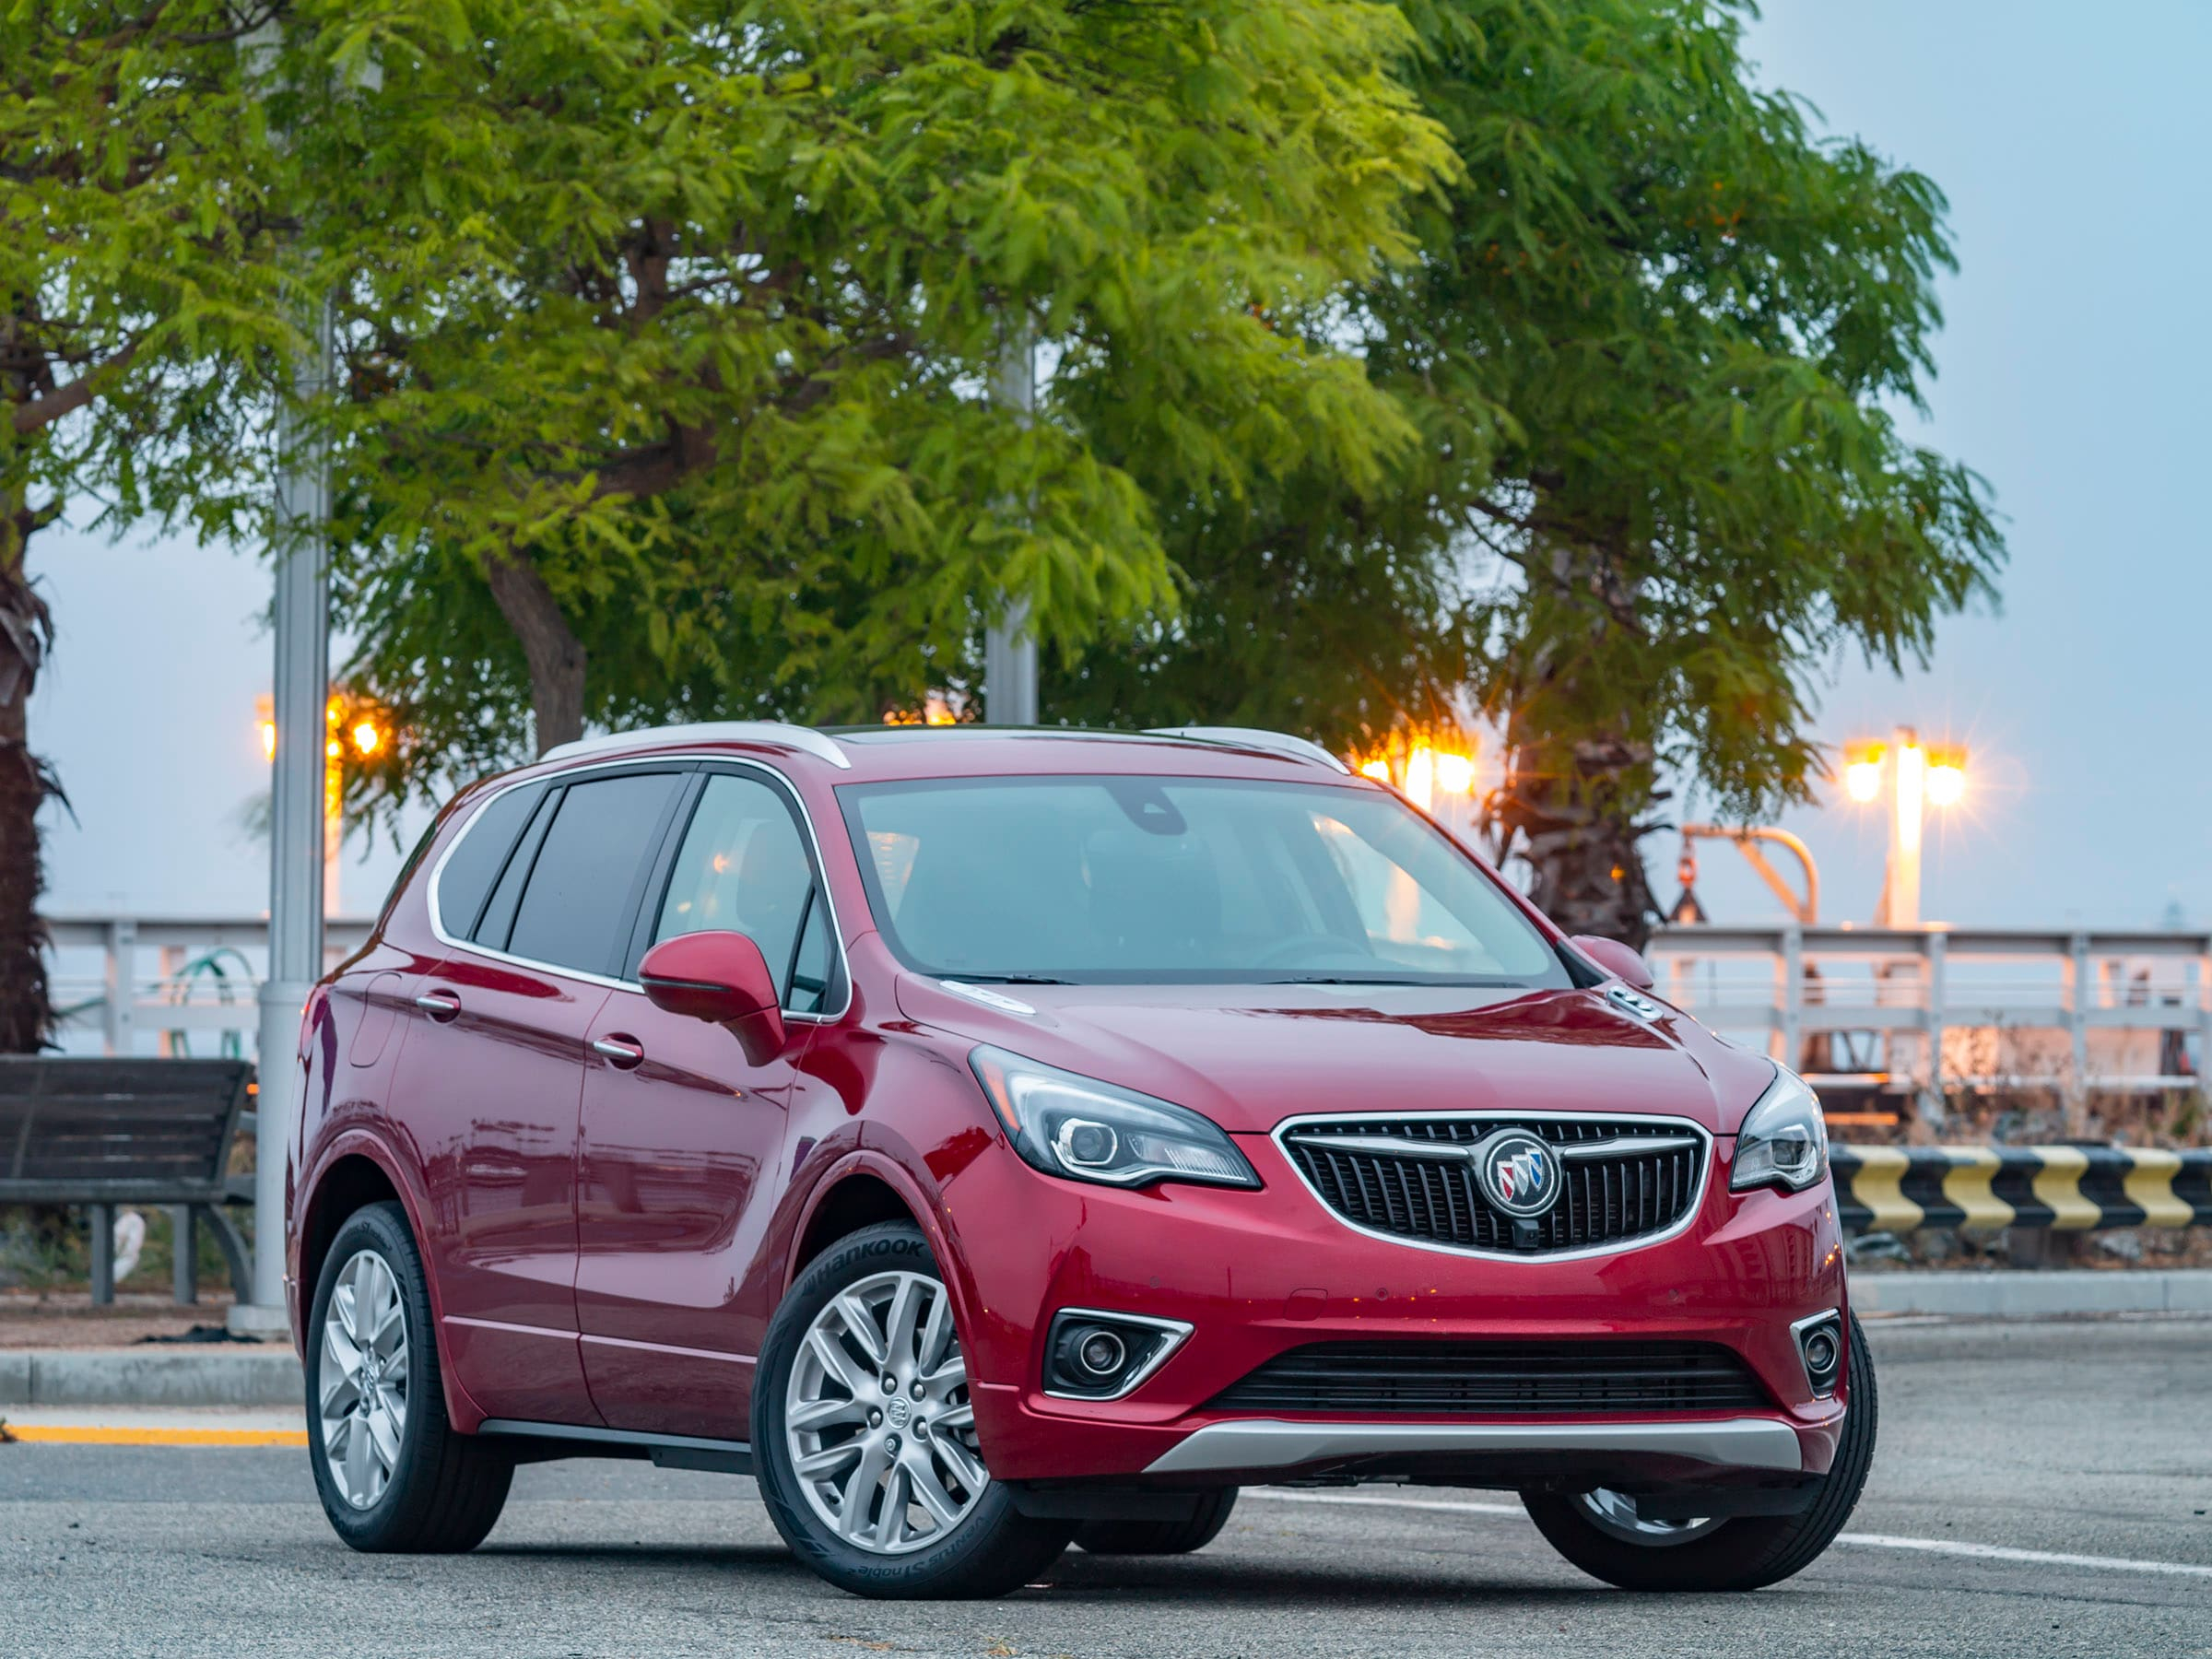 2020 Kia Sportage Vs. 2019 Buick Envision Comparison 2022 Buick Envision Specifications, Safety Features, Towing Capacity